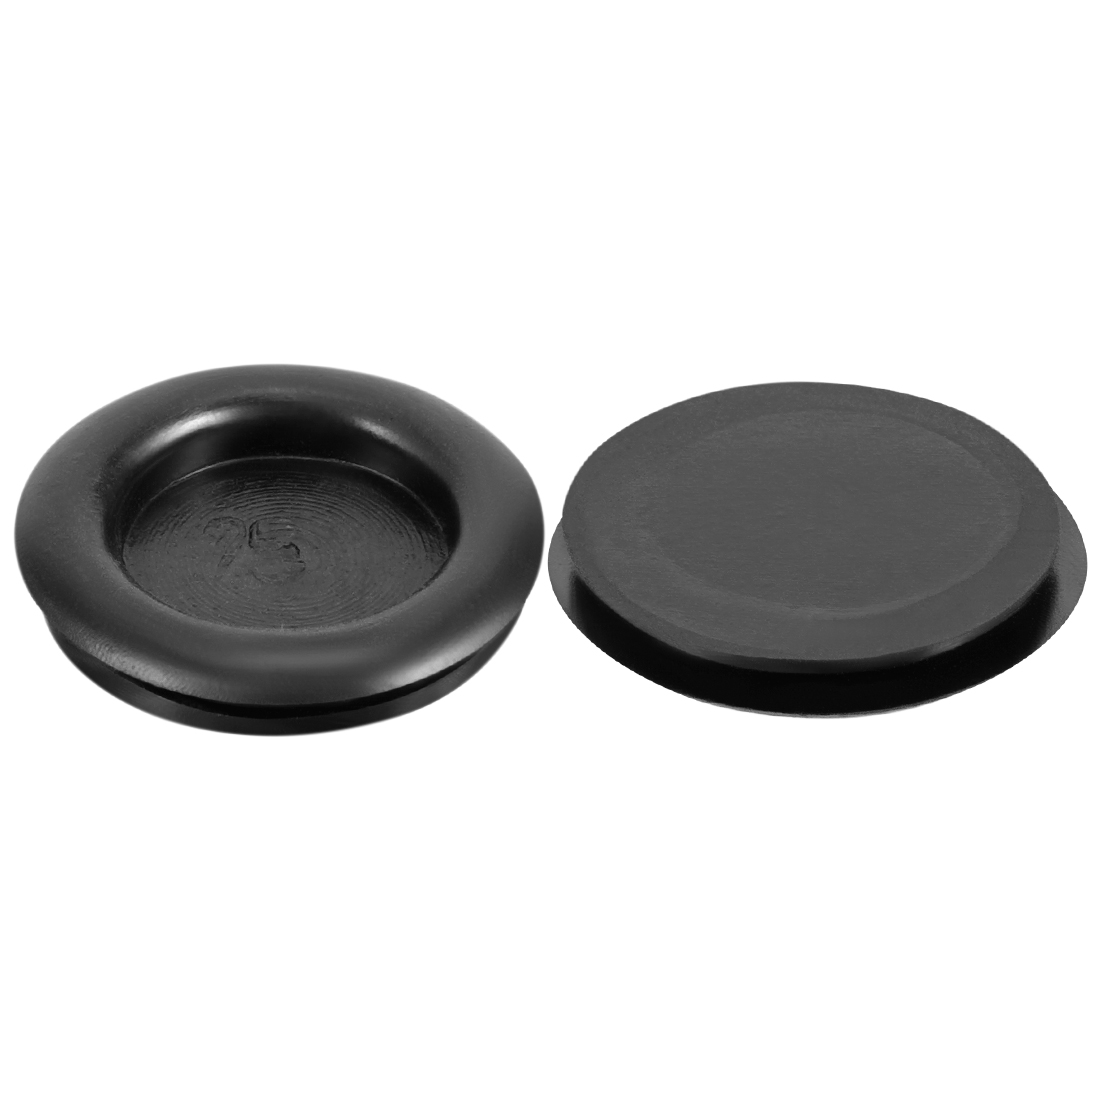 Wire Protector Oil Resistant Rubber Grommets 25mm Mounting Dia 30Pcs Black